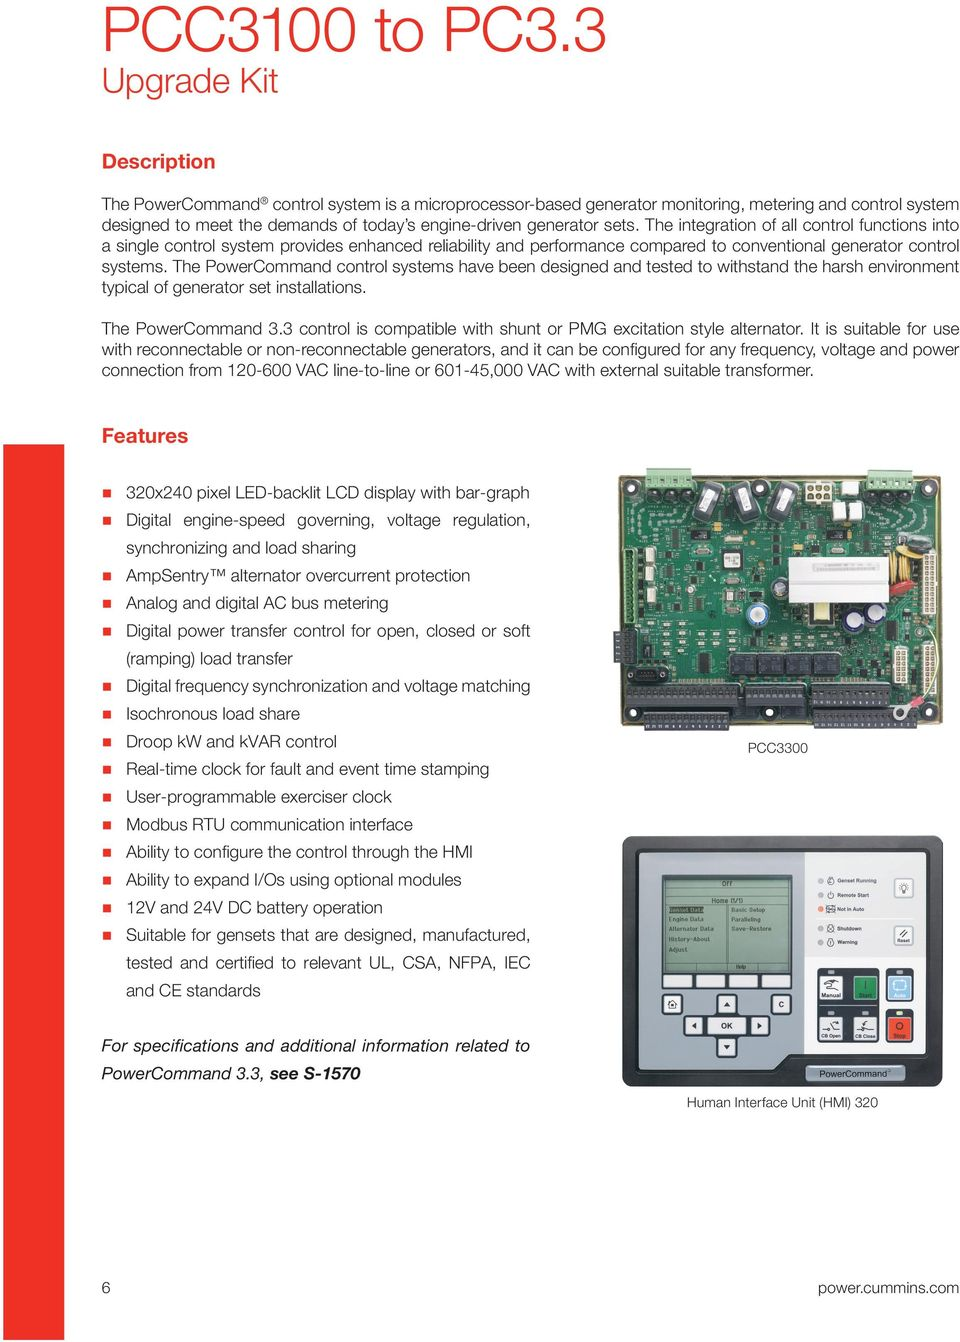 The integration of all control functions into a single control system provides enhanced reliability and performance compared to conventional generator control systems.